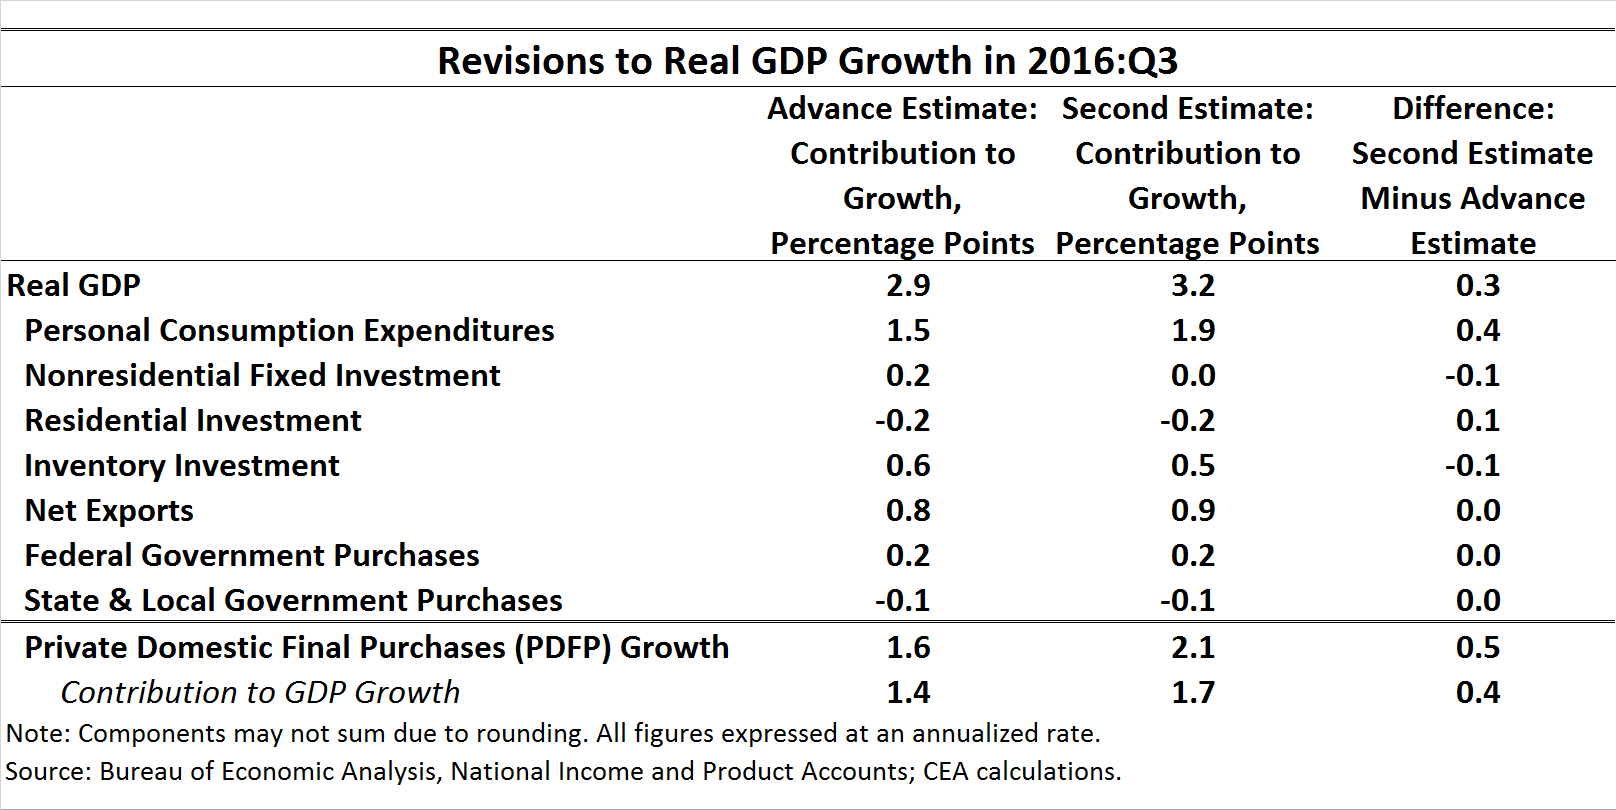 Revisions to Real GDP Growth in 2016:Q3